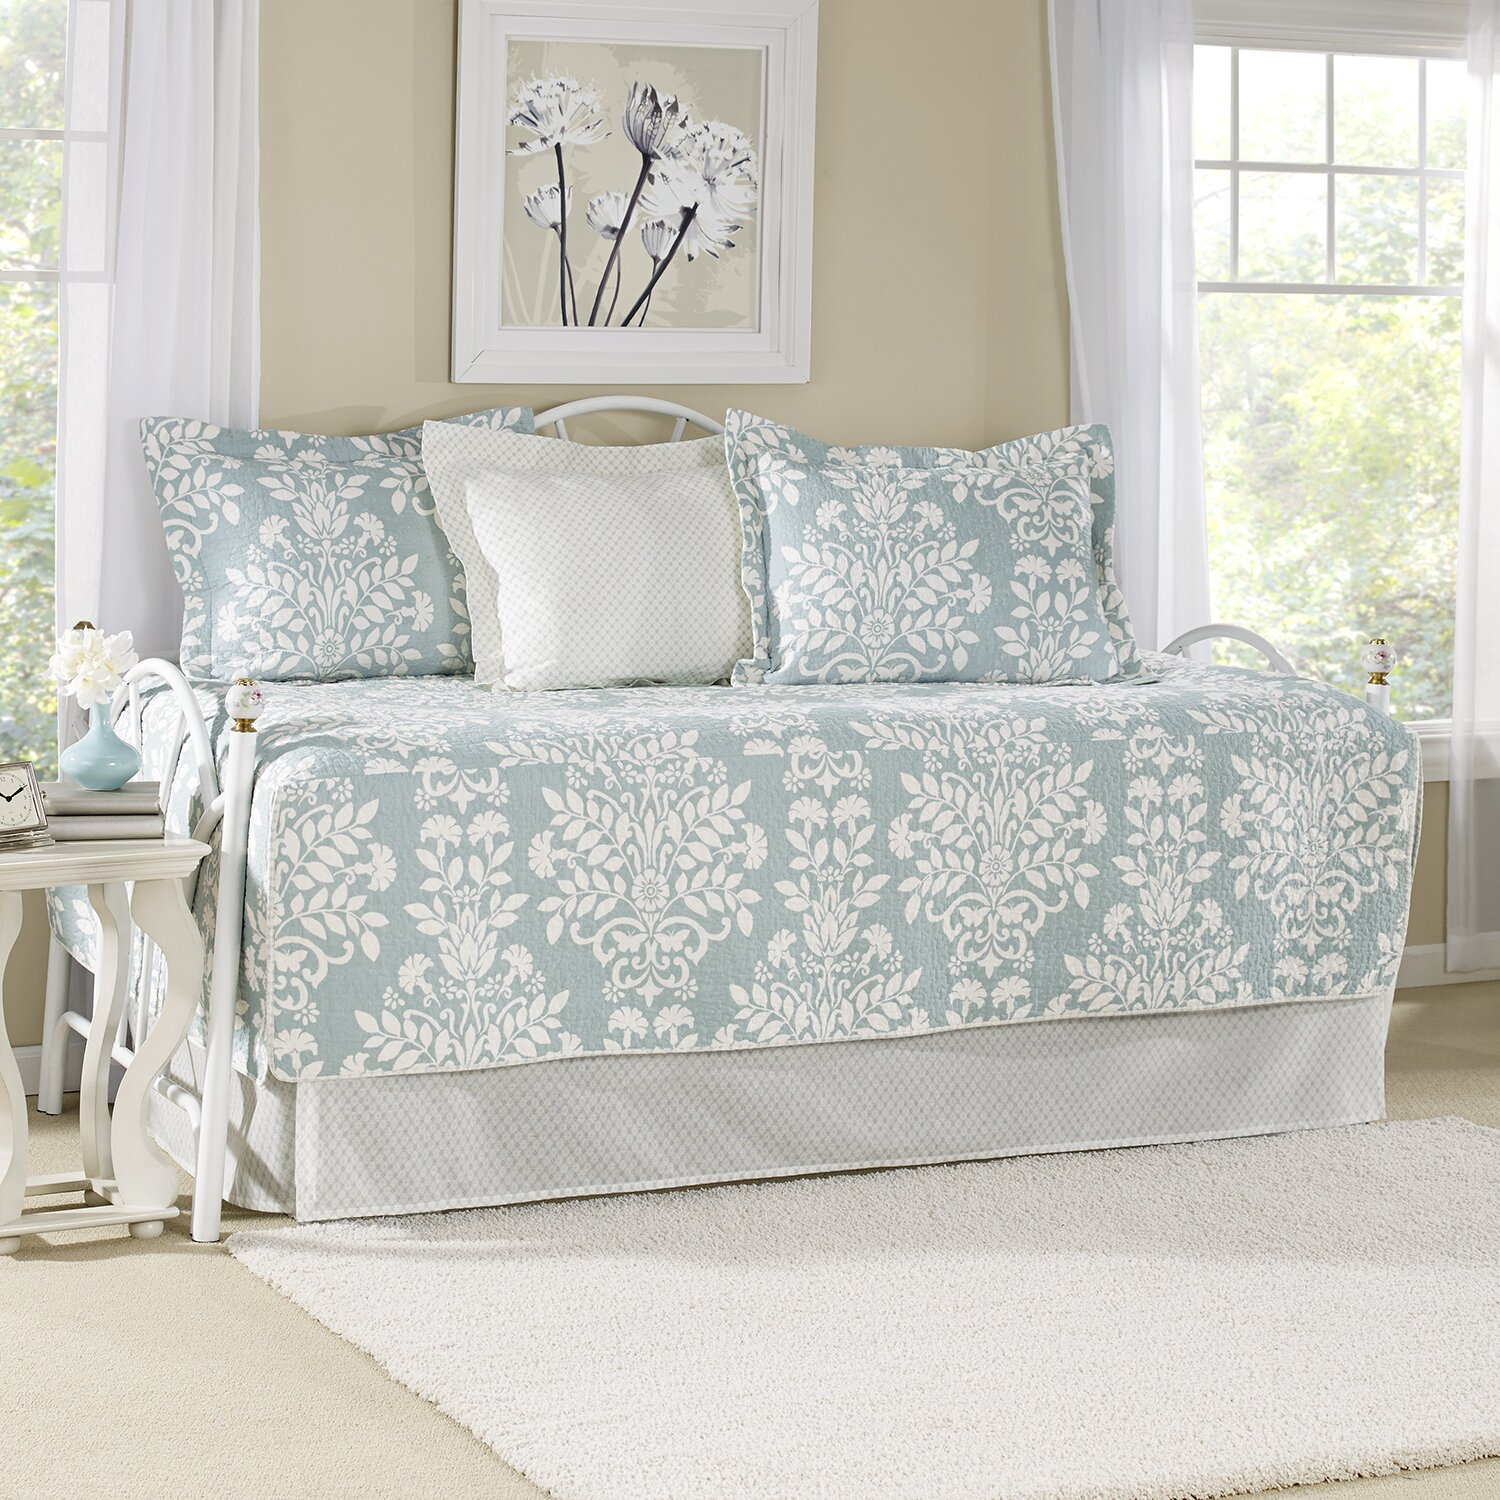 laura ashley home rowland coverlet set reviews wayfair. Black Bedroom Furniture Sets. Home Design Ideas